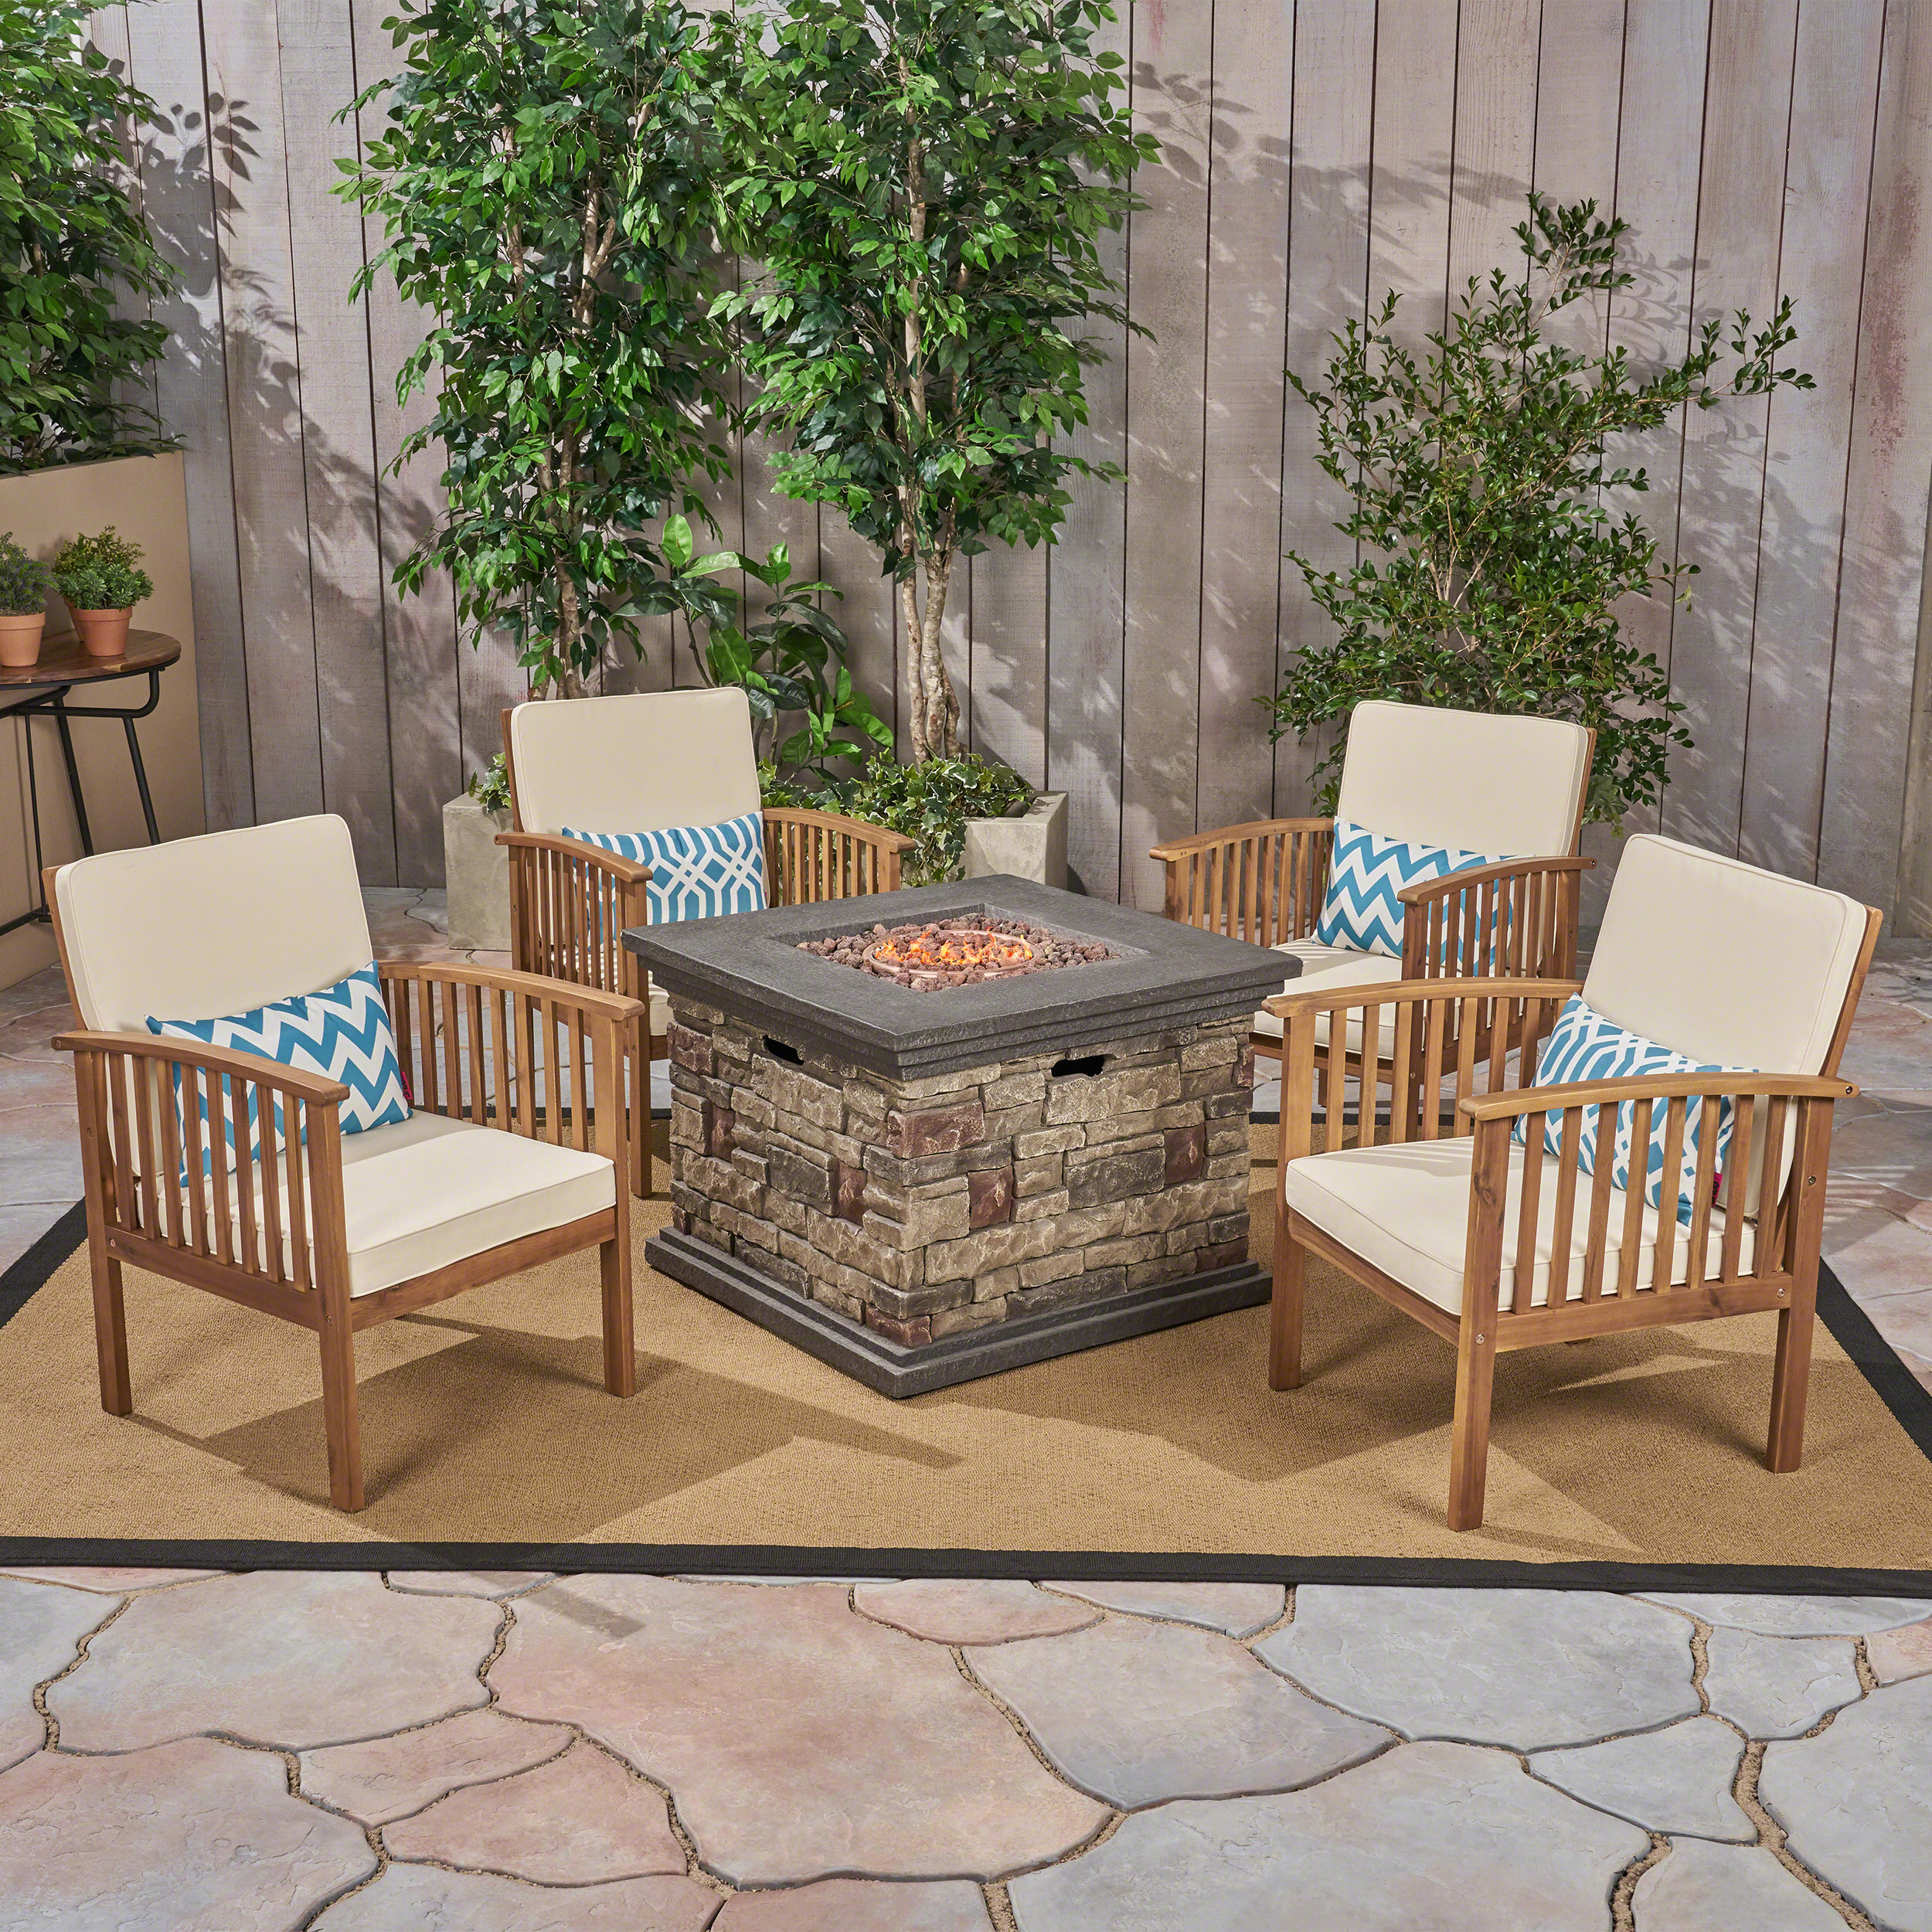 Tucson Outdoor 5 Piece Acacia Wood Chat Set with Cushions and Stone Finished Fire Pit, Brown Patina, Cream, Stone, Brown